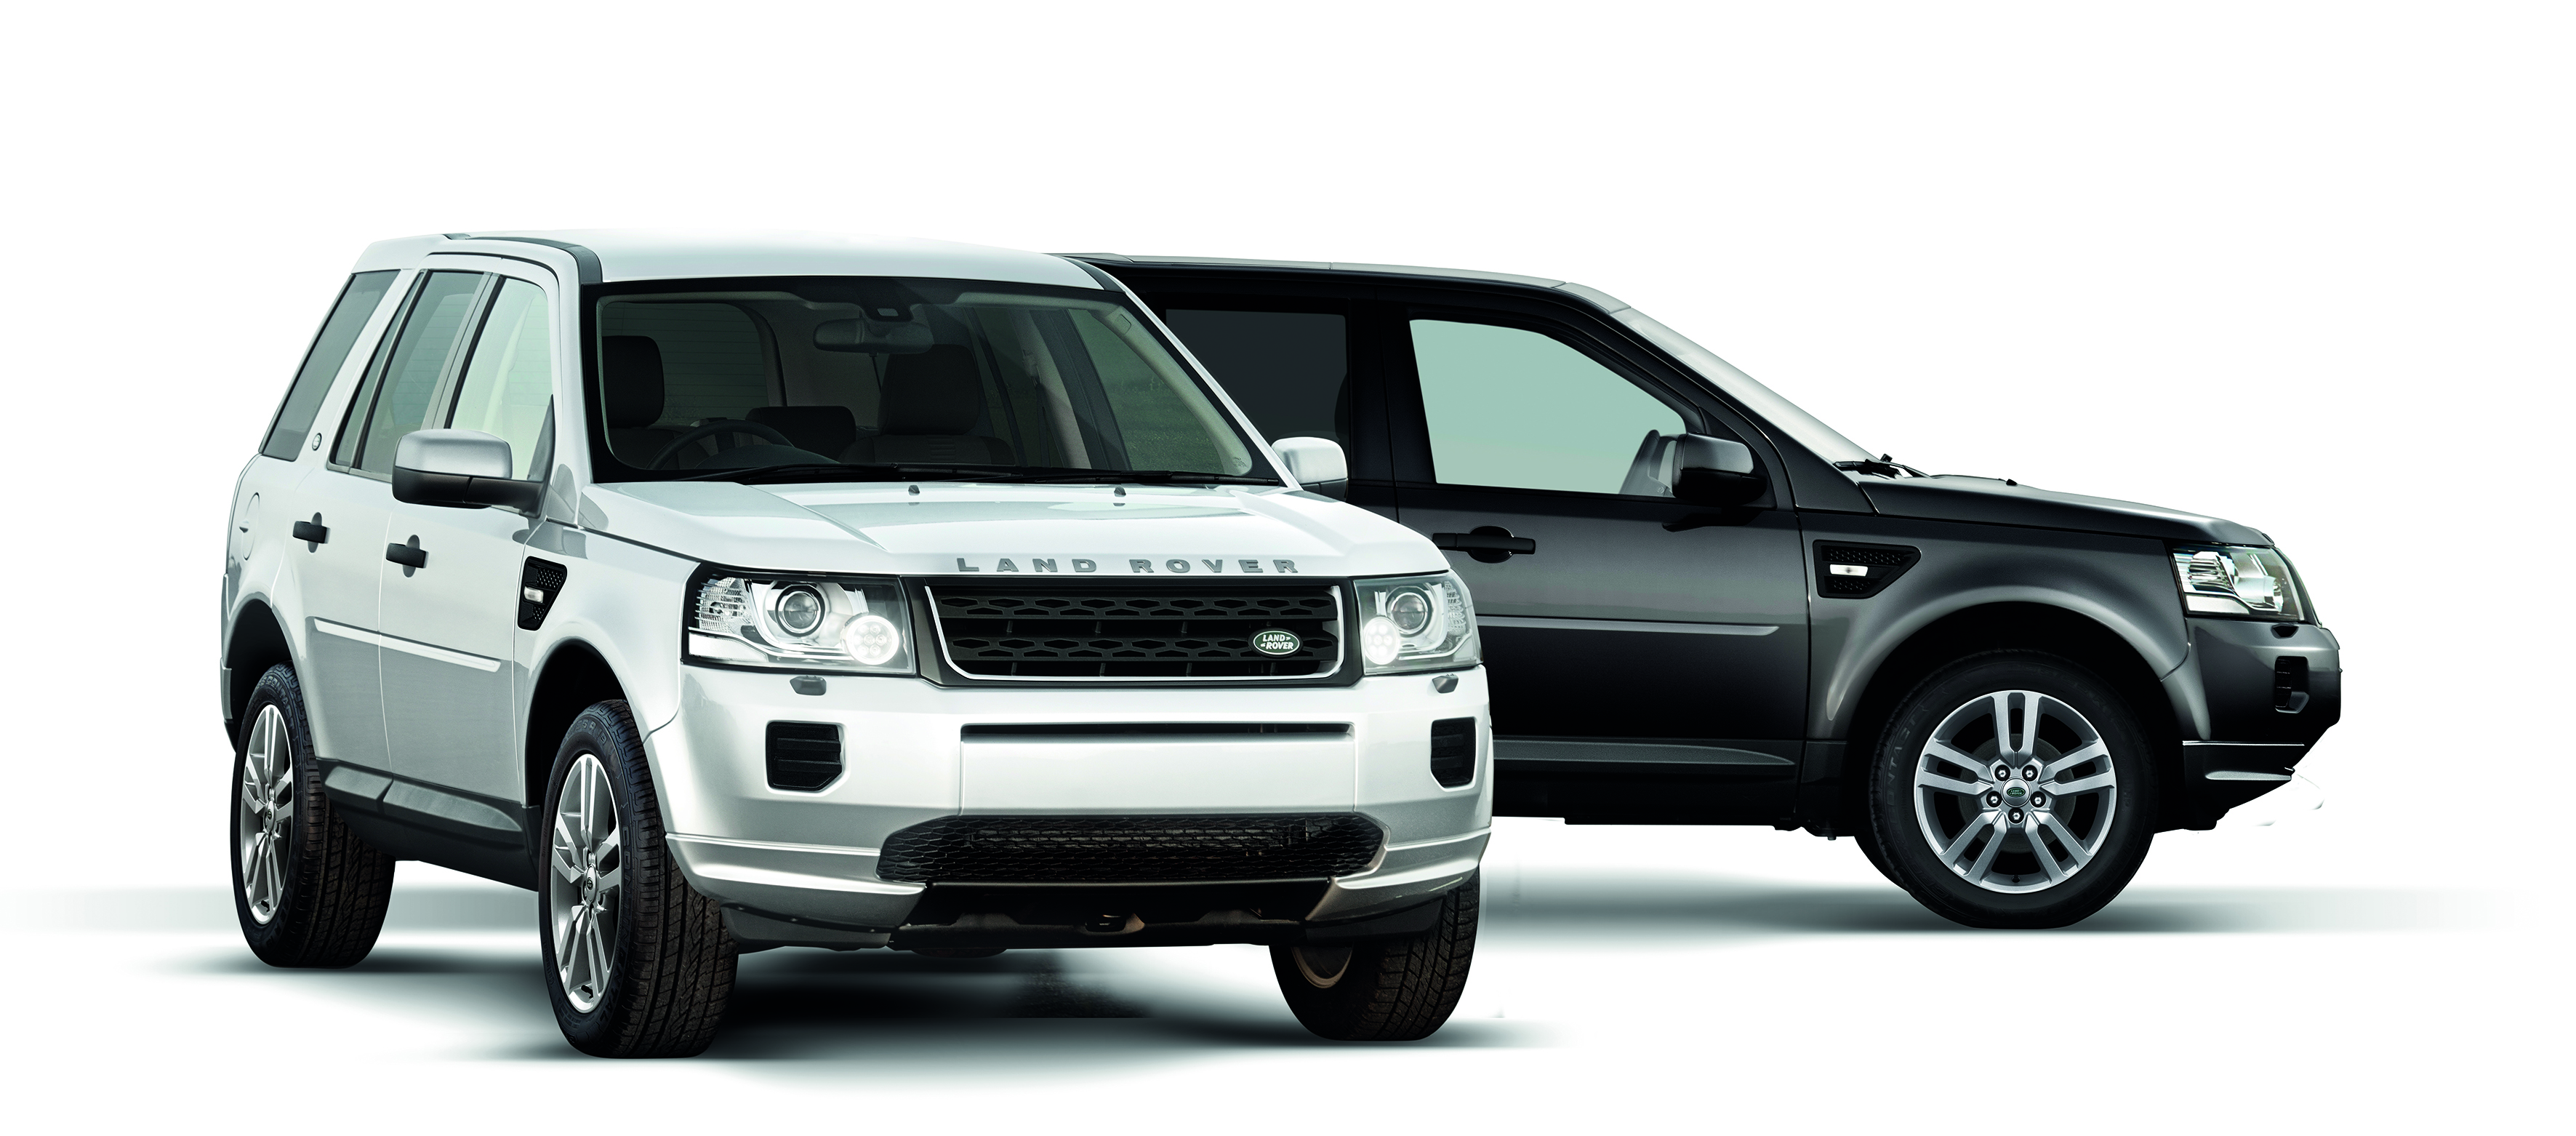 center display land the crop lr limited black edition white whitley and news price rover freelander landrover